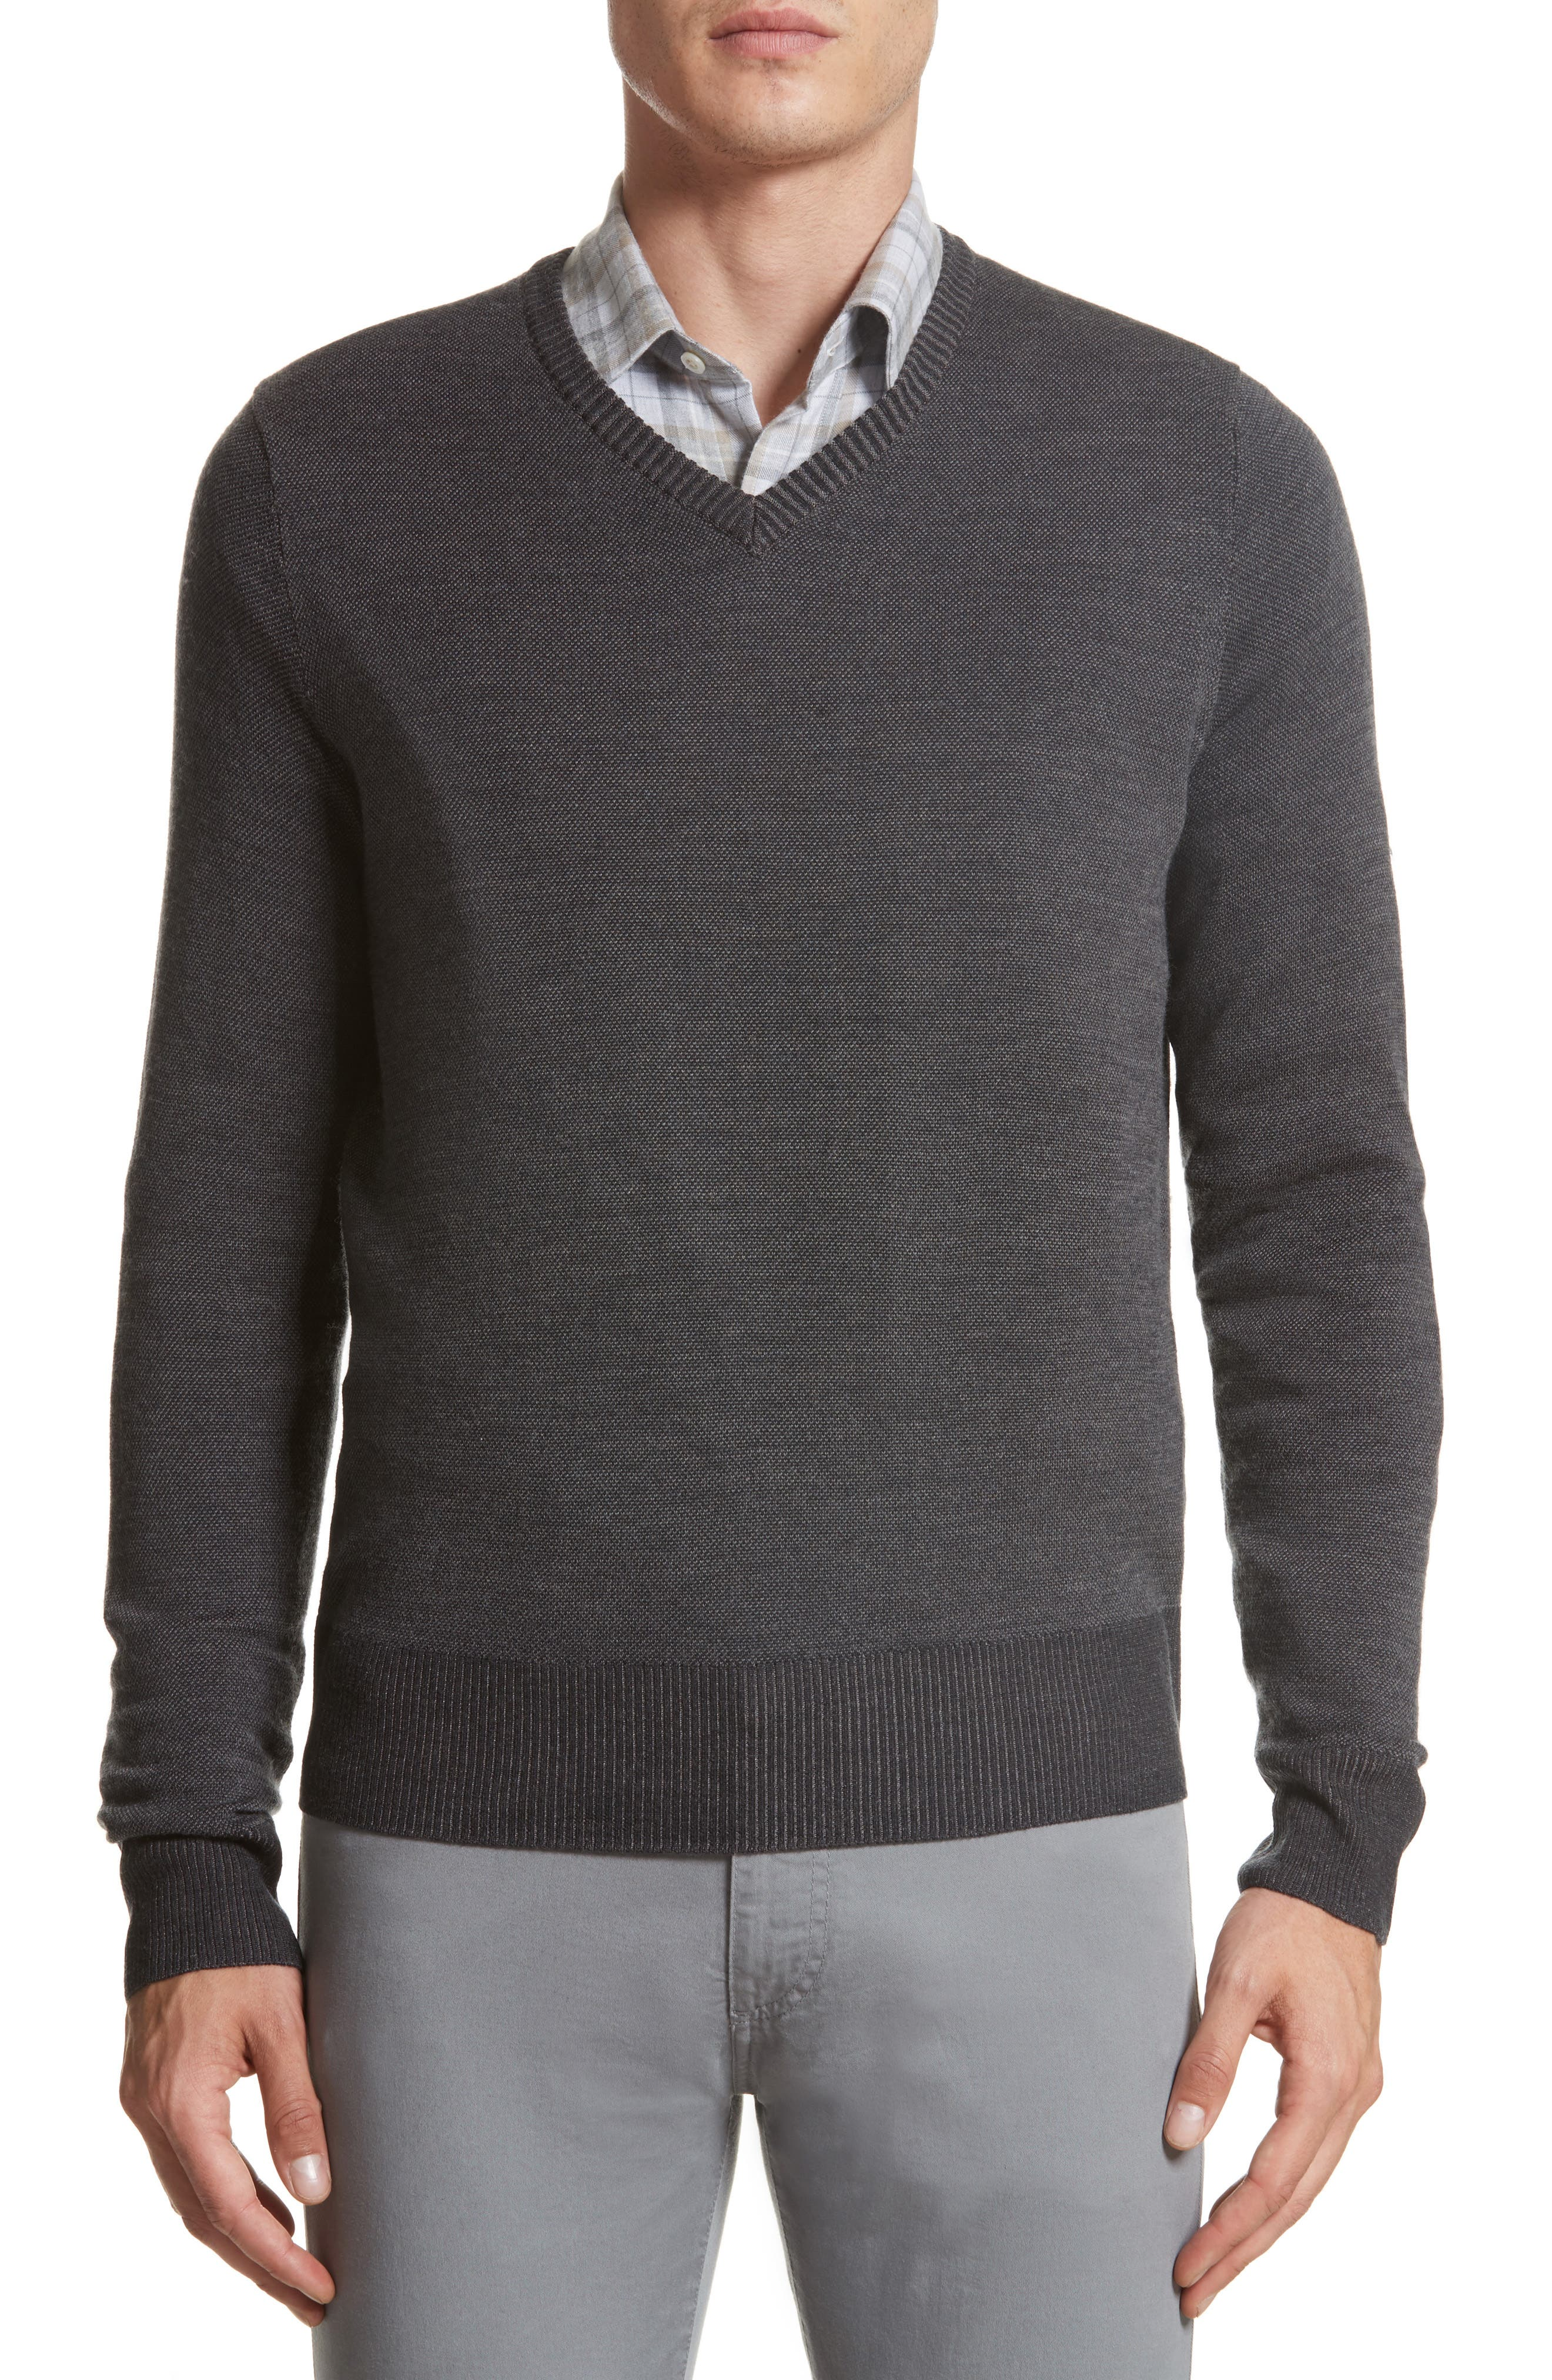 Regular Fit Wool Sweater,                             Main thumbnail 1, color,                             Charcoal